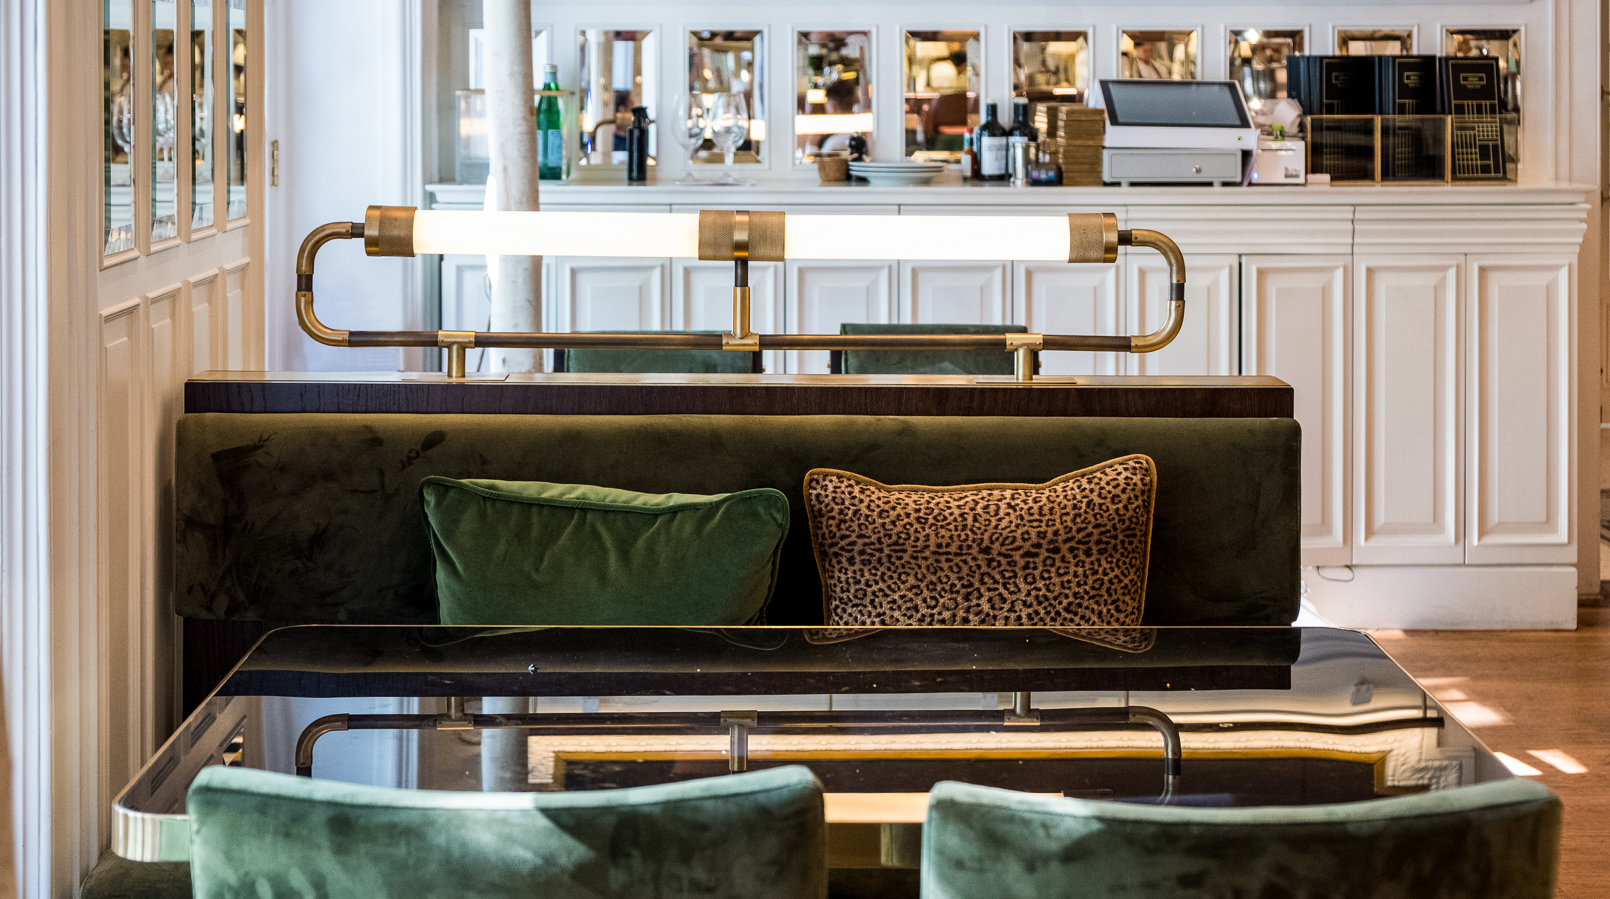 Le Fashionaire Favorite restaurant in Lisbon: JNcQUOI restaurant jncquoi lisbon decor couch green leopard pillows 5695F EN